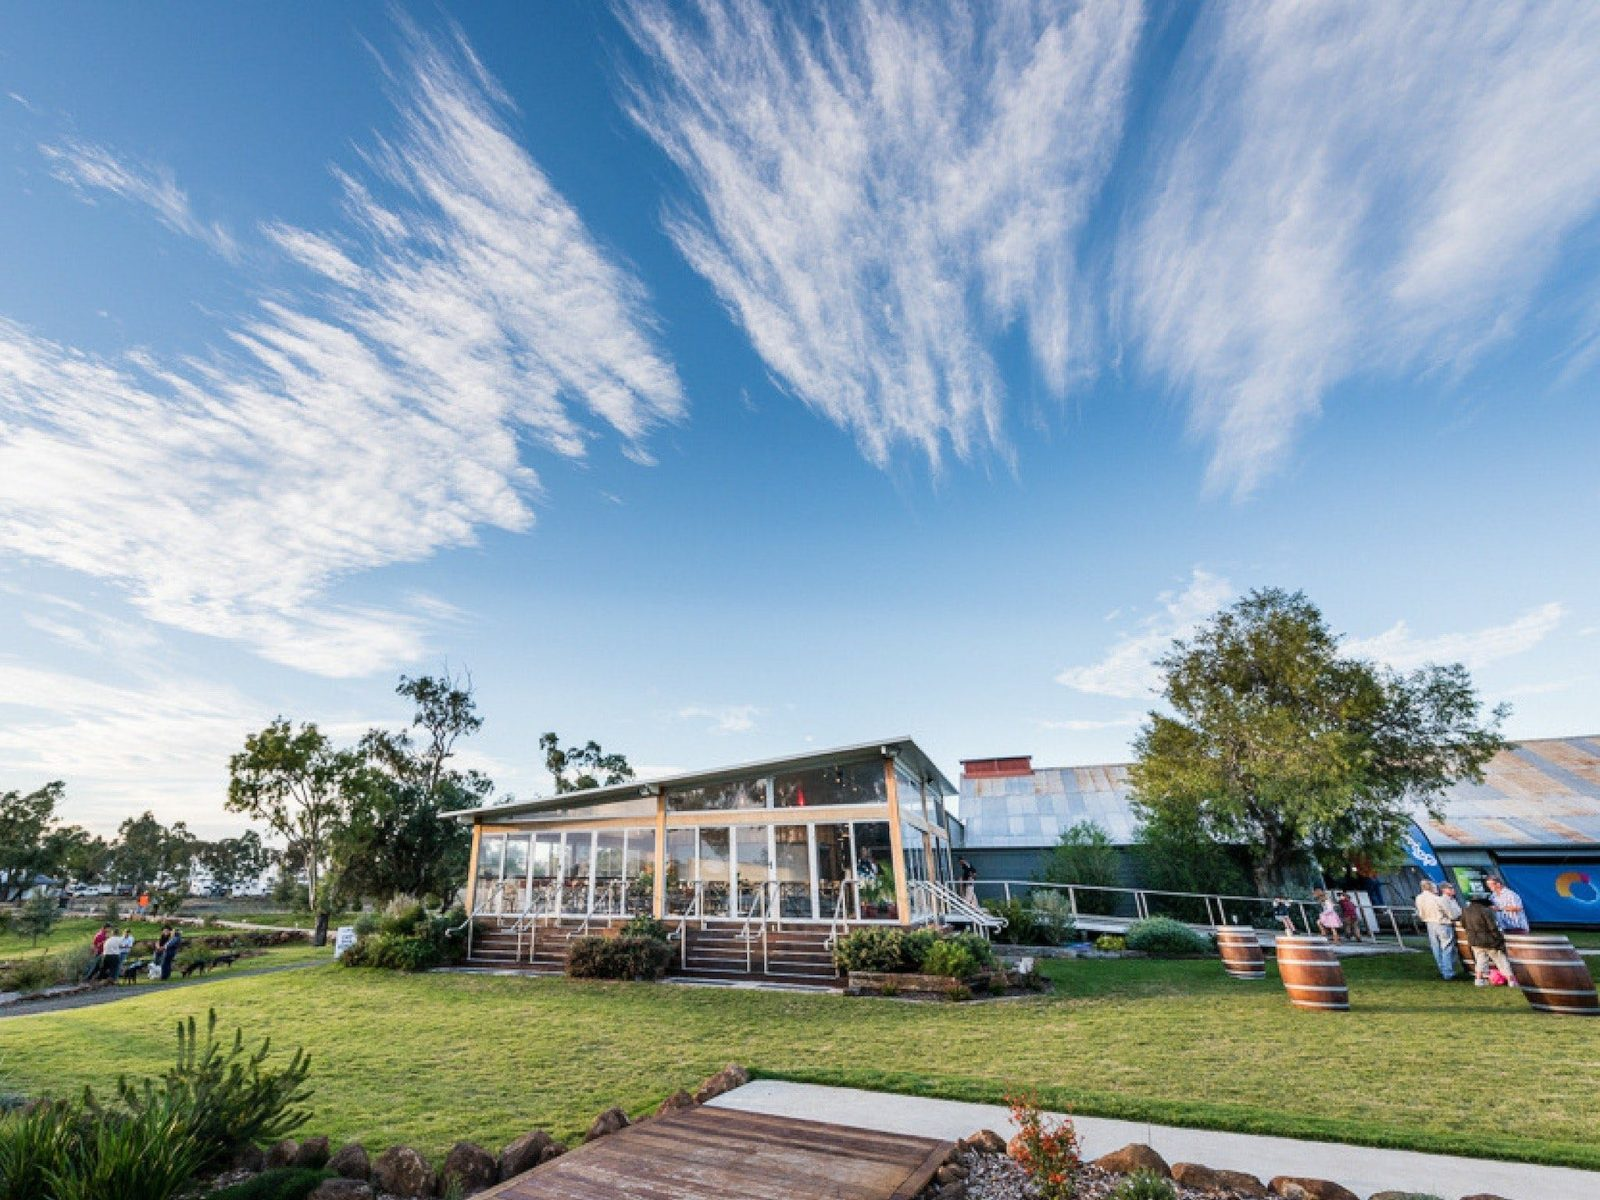 The Woolshed Cafe and Green